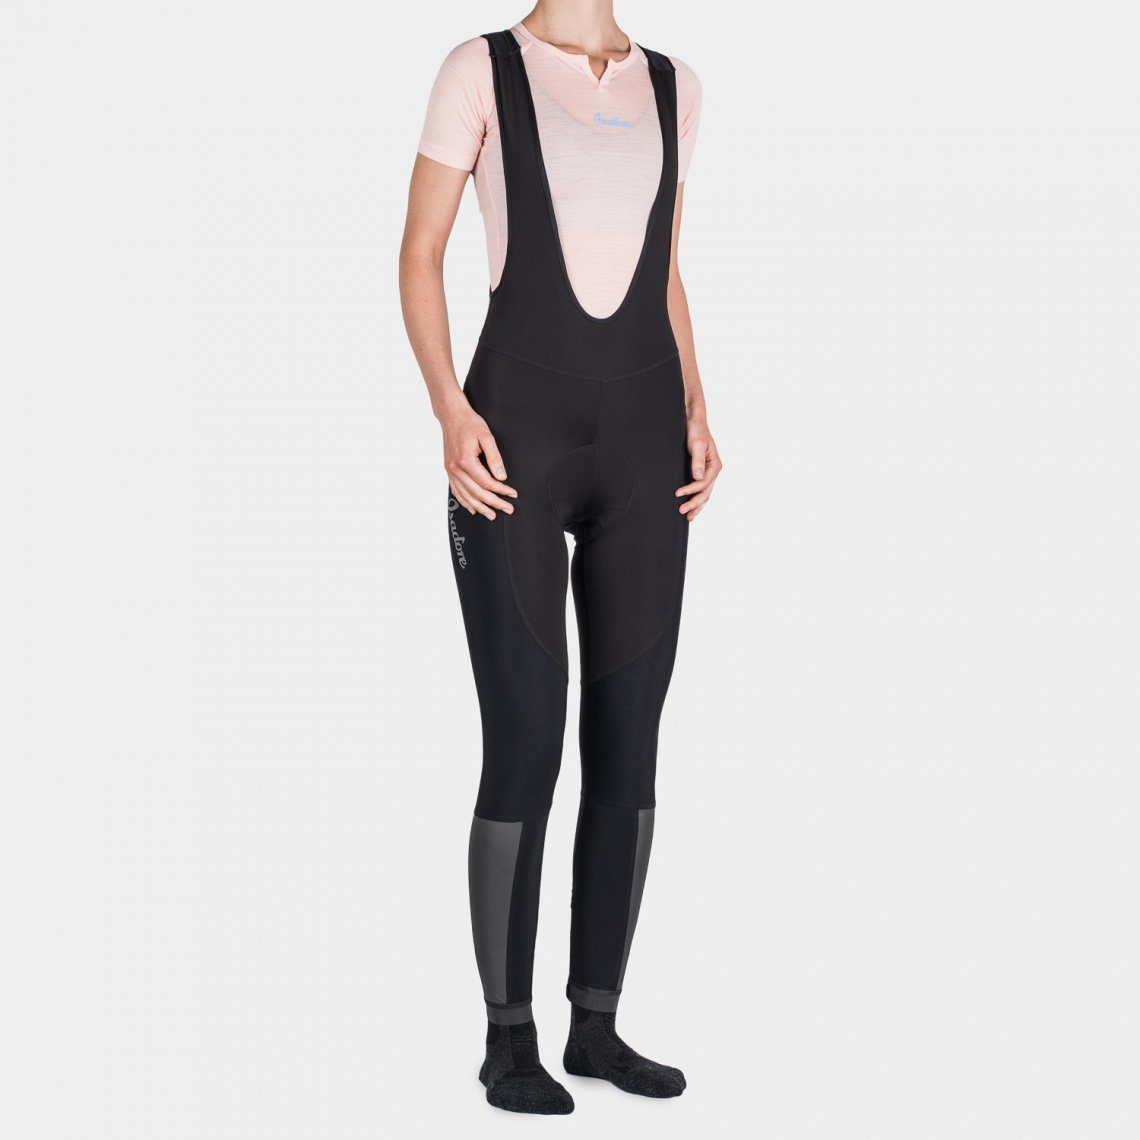 Isadore Women's Medio ThermoRoubaix Tights Bib Tights Isadore XXS